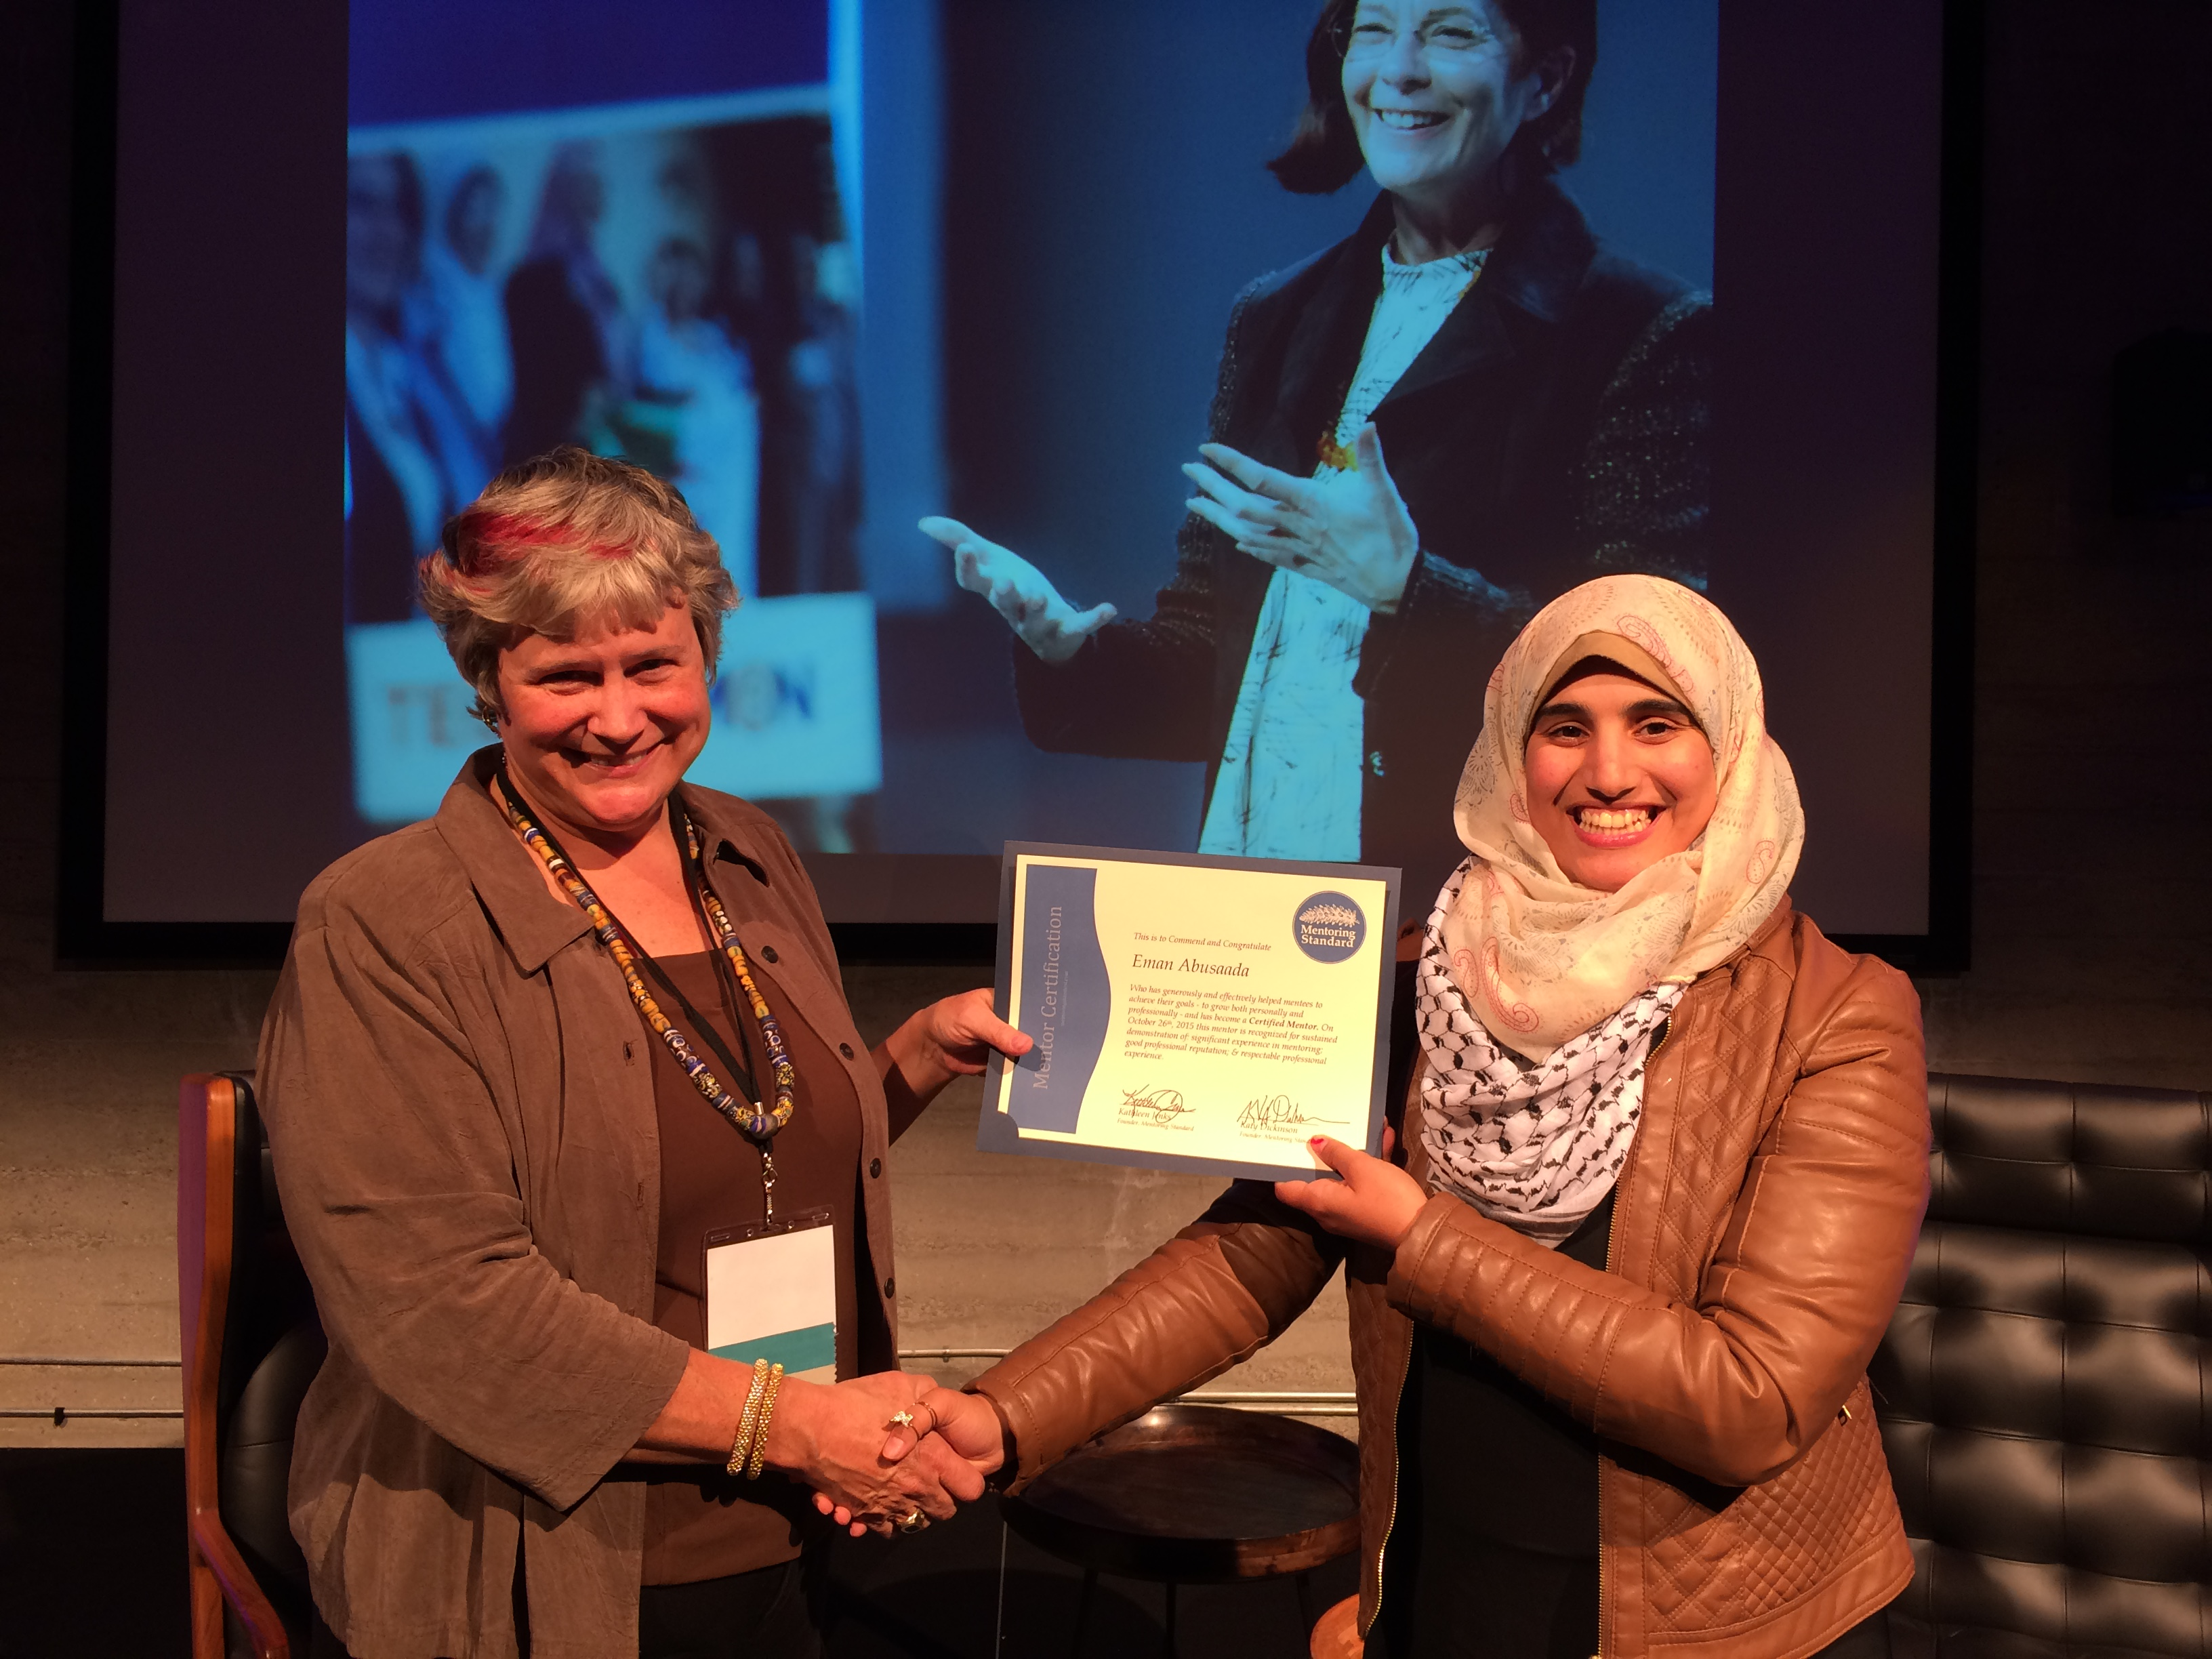 Eman Abusaada received her Mentor Certificate from Katy Dickinson, October 2015